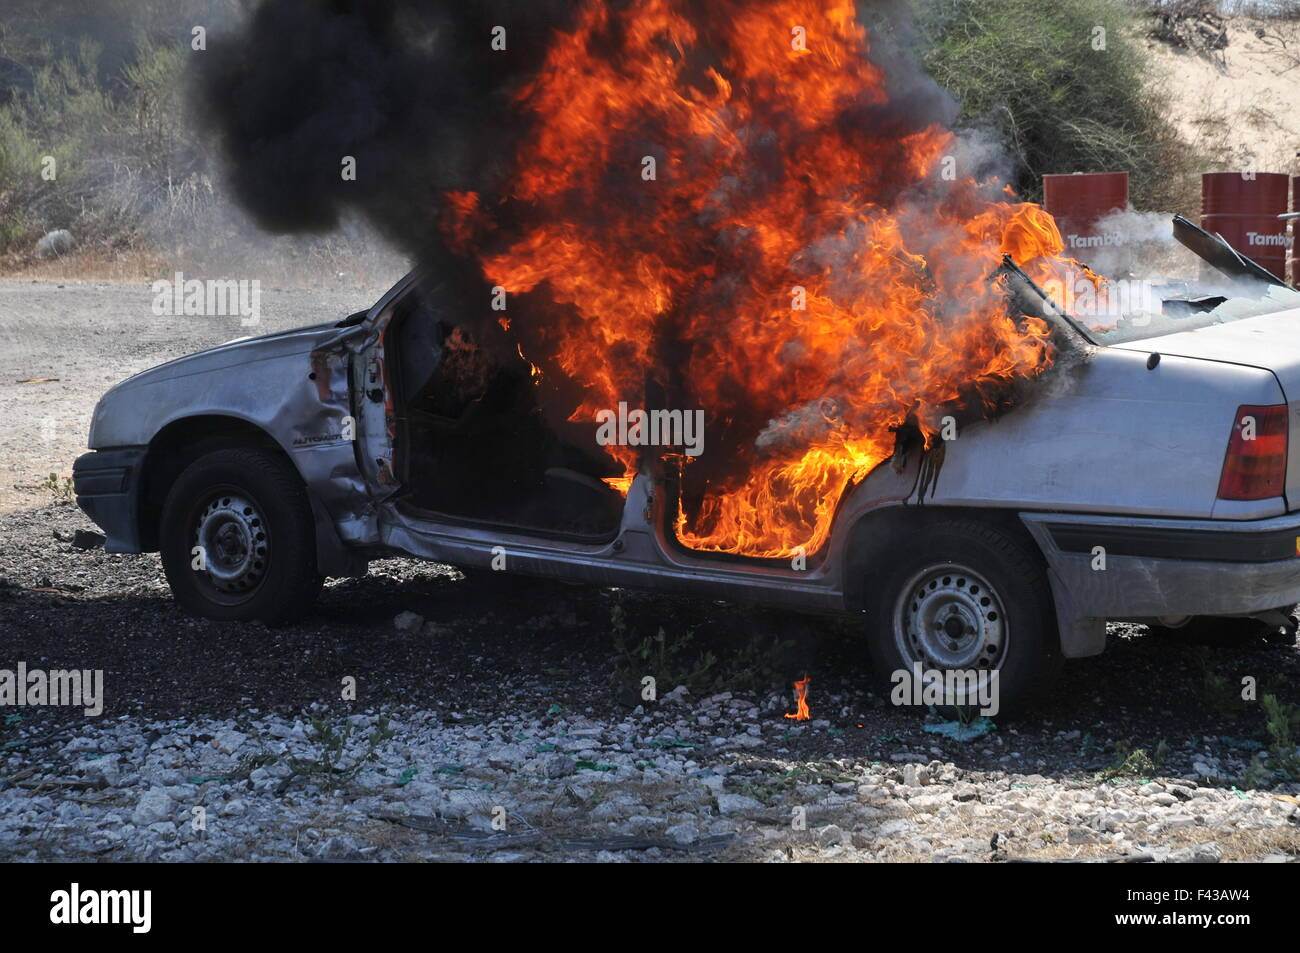 Firefighters extinguish a burning car - Stock Image